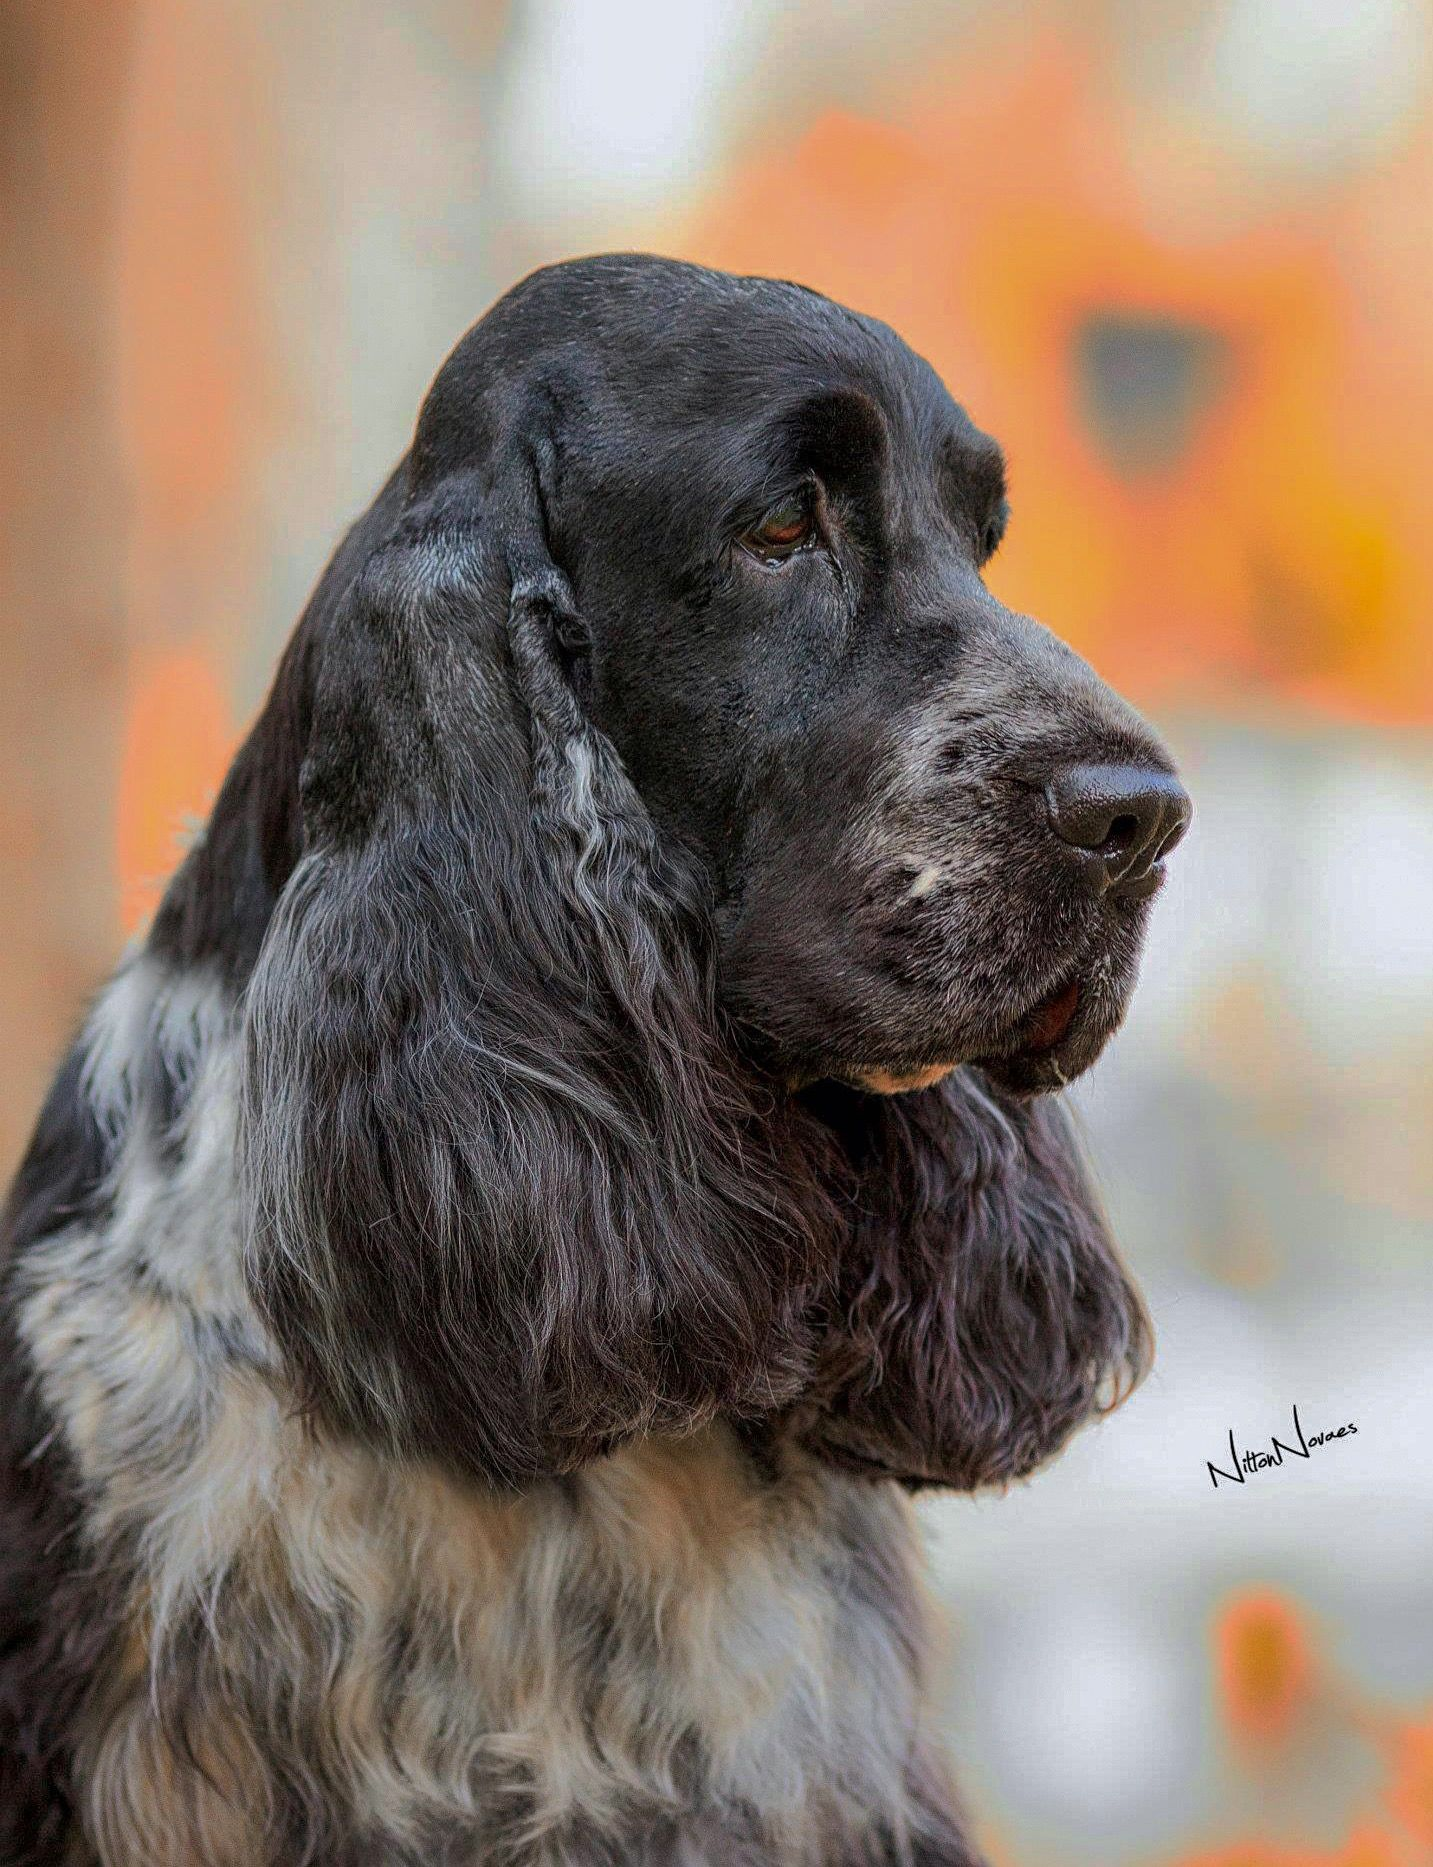 Pin By Erika Zick On Engelse Cocker Spaniels In 2020 Blue Roan Cocker Spaniel Cocker Spaniel Raining Cats And Dogs